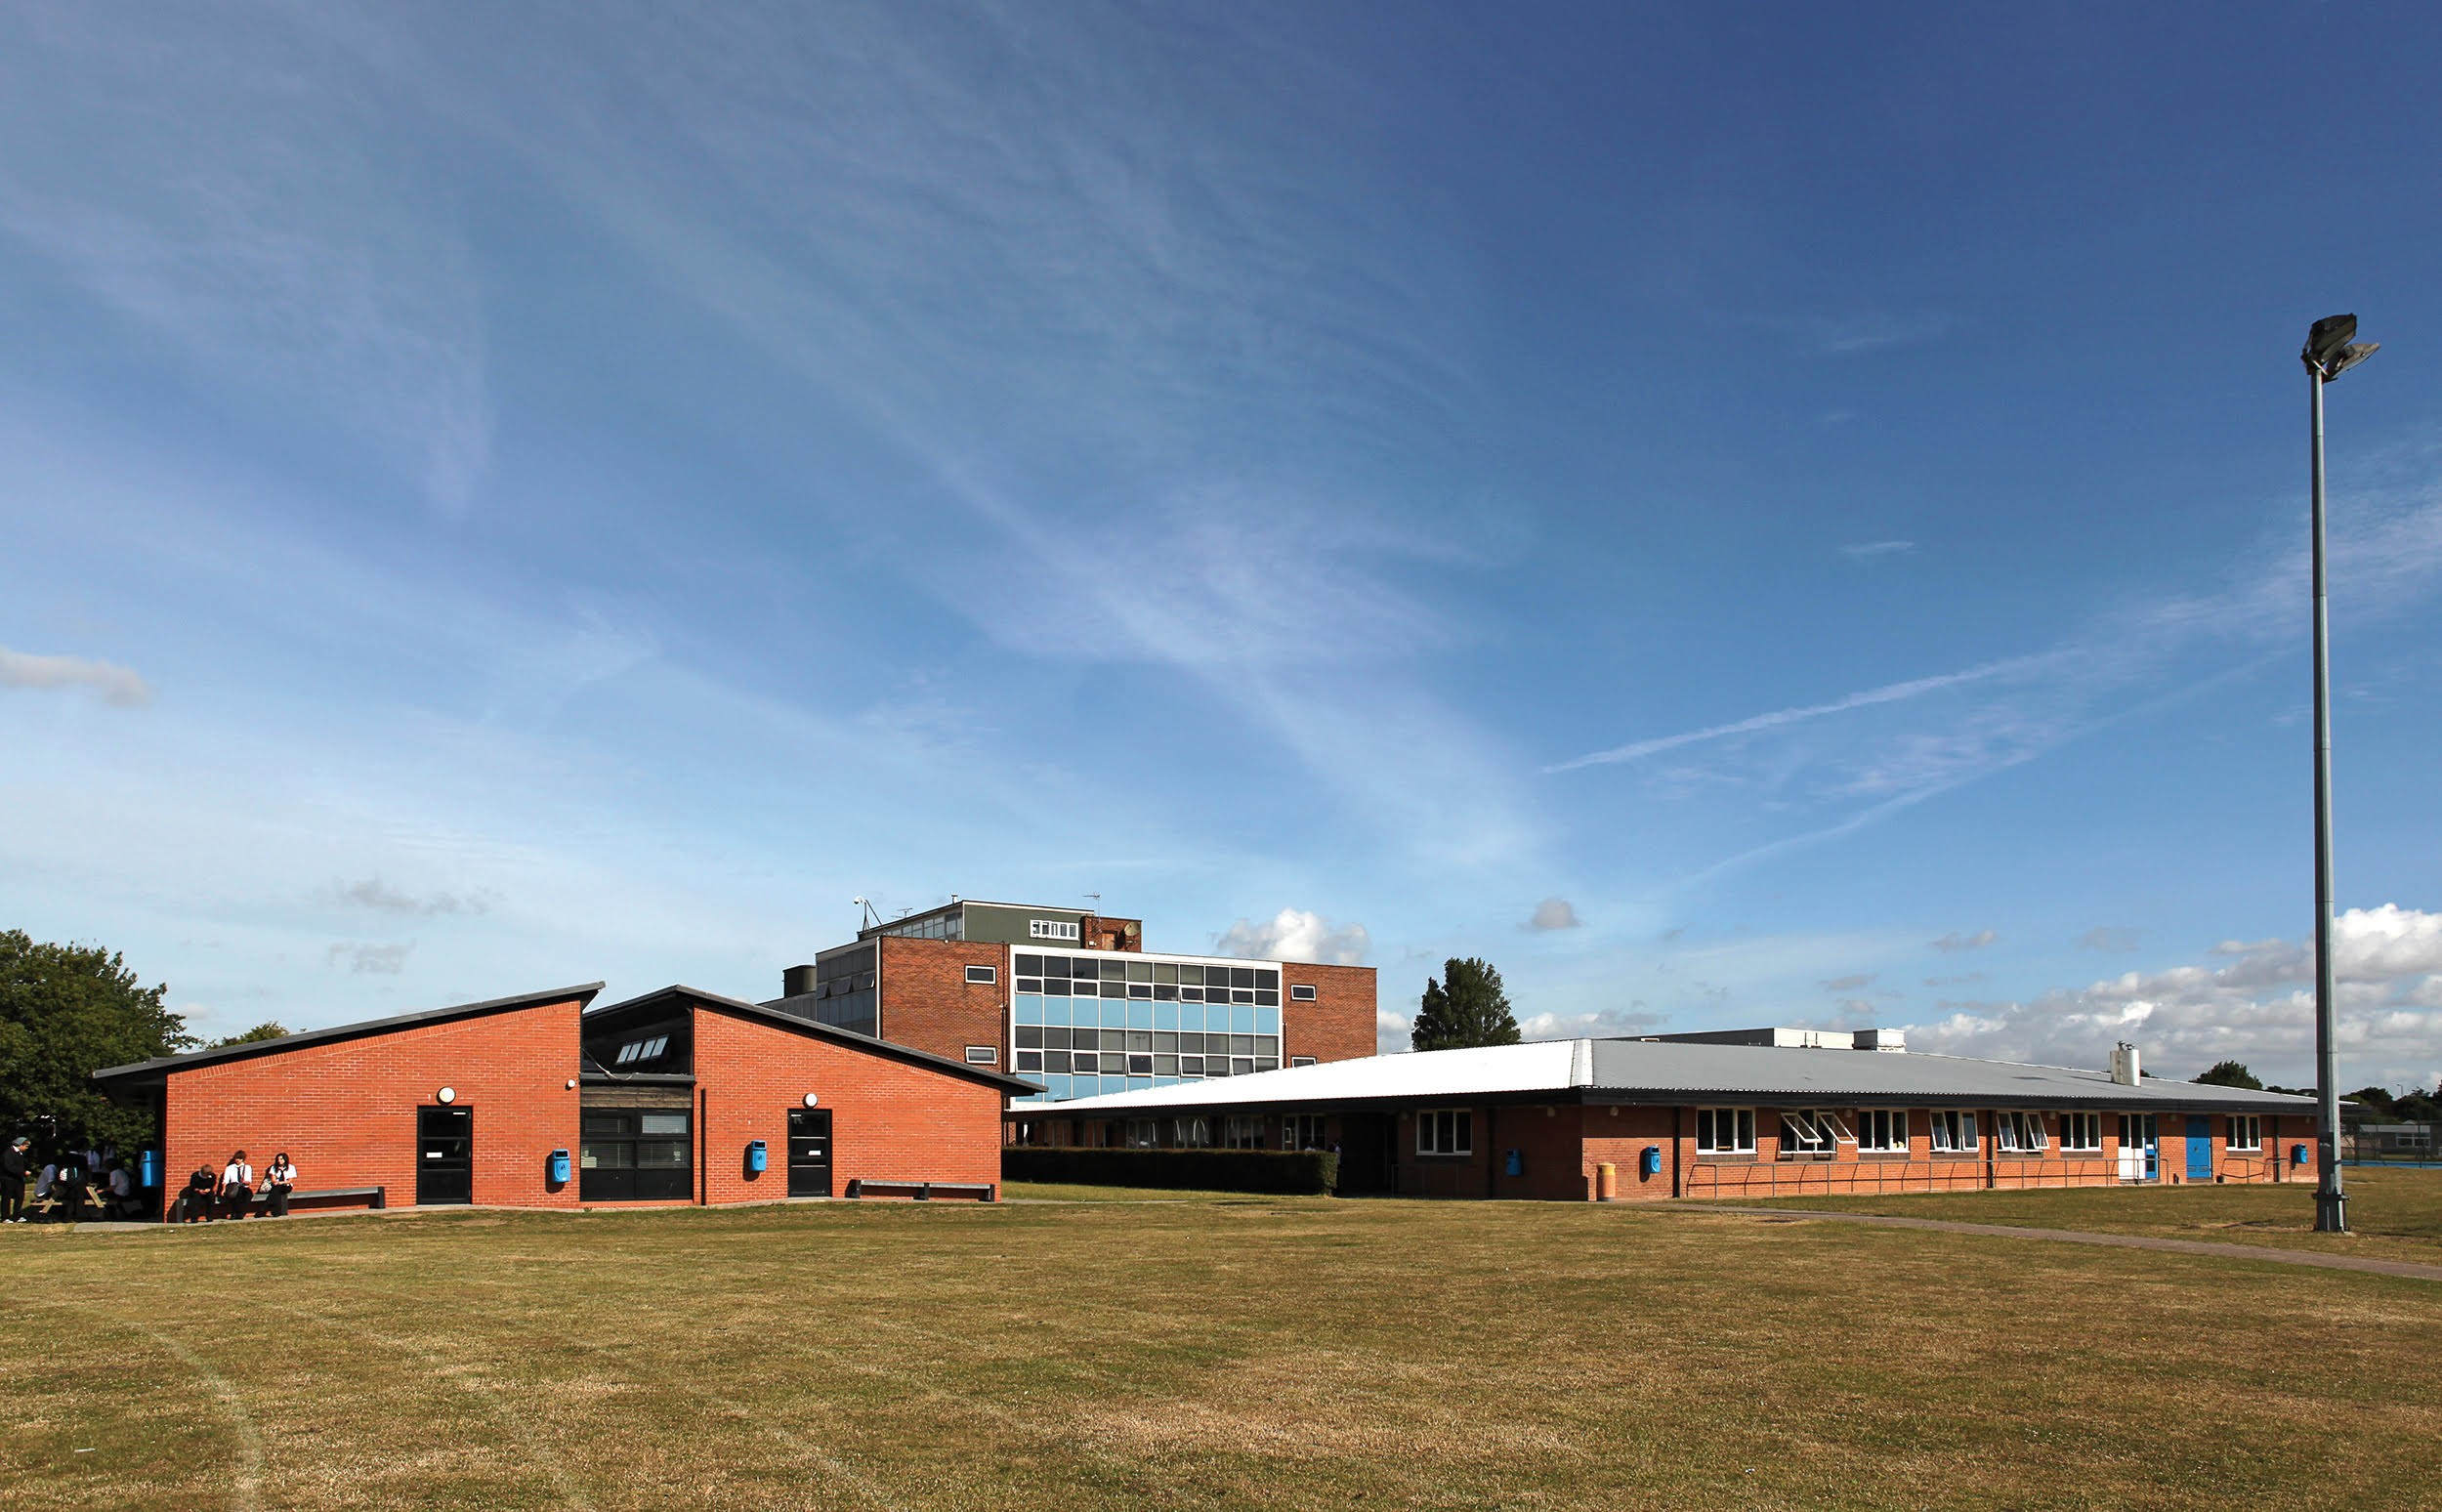 """Saving Time and Enabling Cloud-Based Learning With Automation for Cliff Park Ormiston Academy is a secondary school in Norfolk and part of the Ormiston Academies Trust, which is one of the largest not-for-profit multi-academy trusts in England, educating 30,000 pupils across 32 secondary schools, seven primary schools and one special school.   A supportive and inclusive academy, Cliff Park prides itself on an ethos of excellence and its core values of Discover, Create, Thrive and Achieve. All students are encouraged to """"do their best"""" and reach their full potential.   Salamander became part of this story by provisioning technology and automation that connects staff and students, allowing them to access everything they need to develop and achieve."""